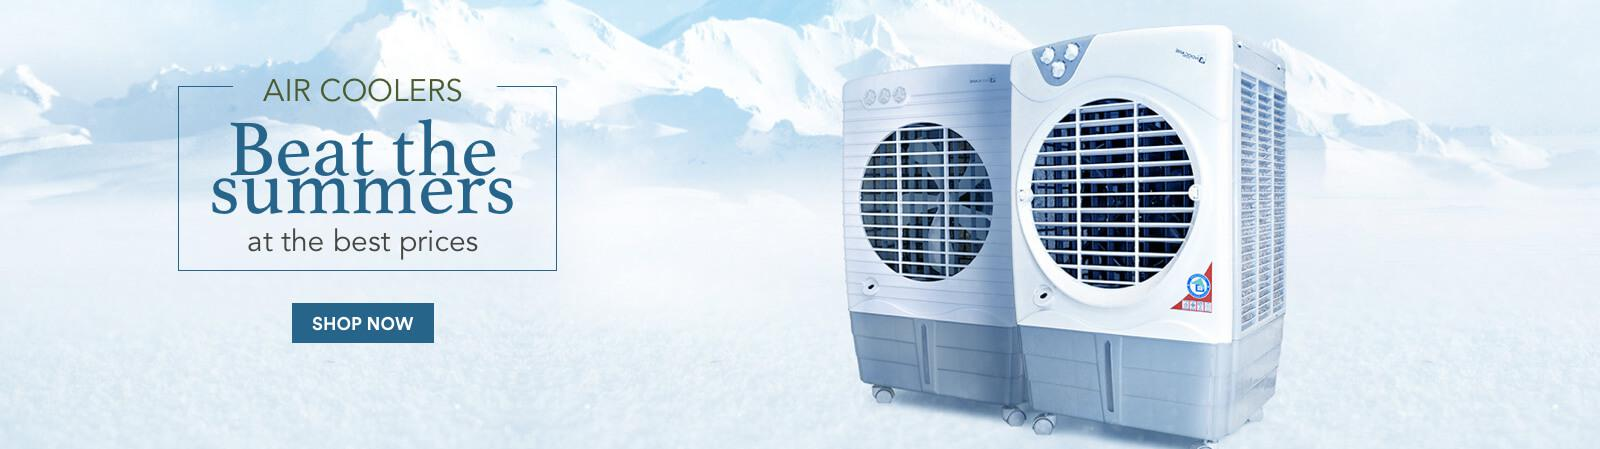 Air Coolers Banner